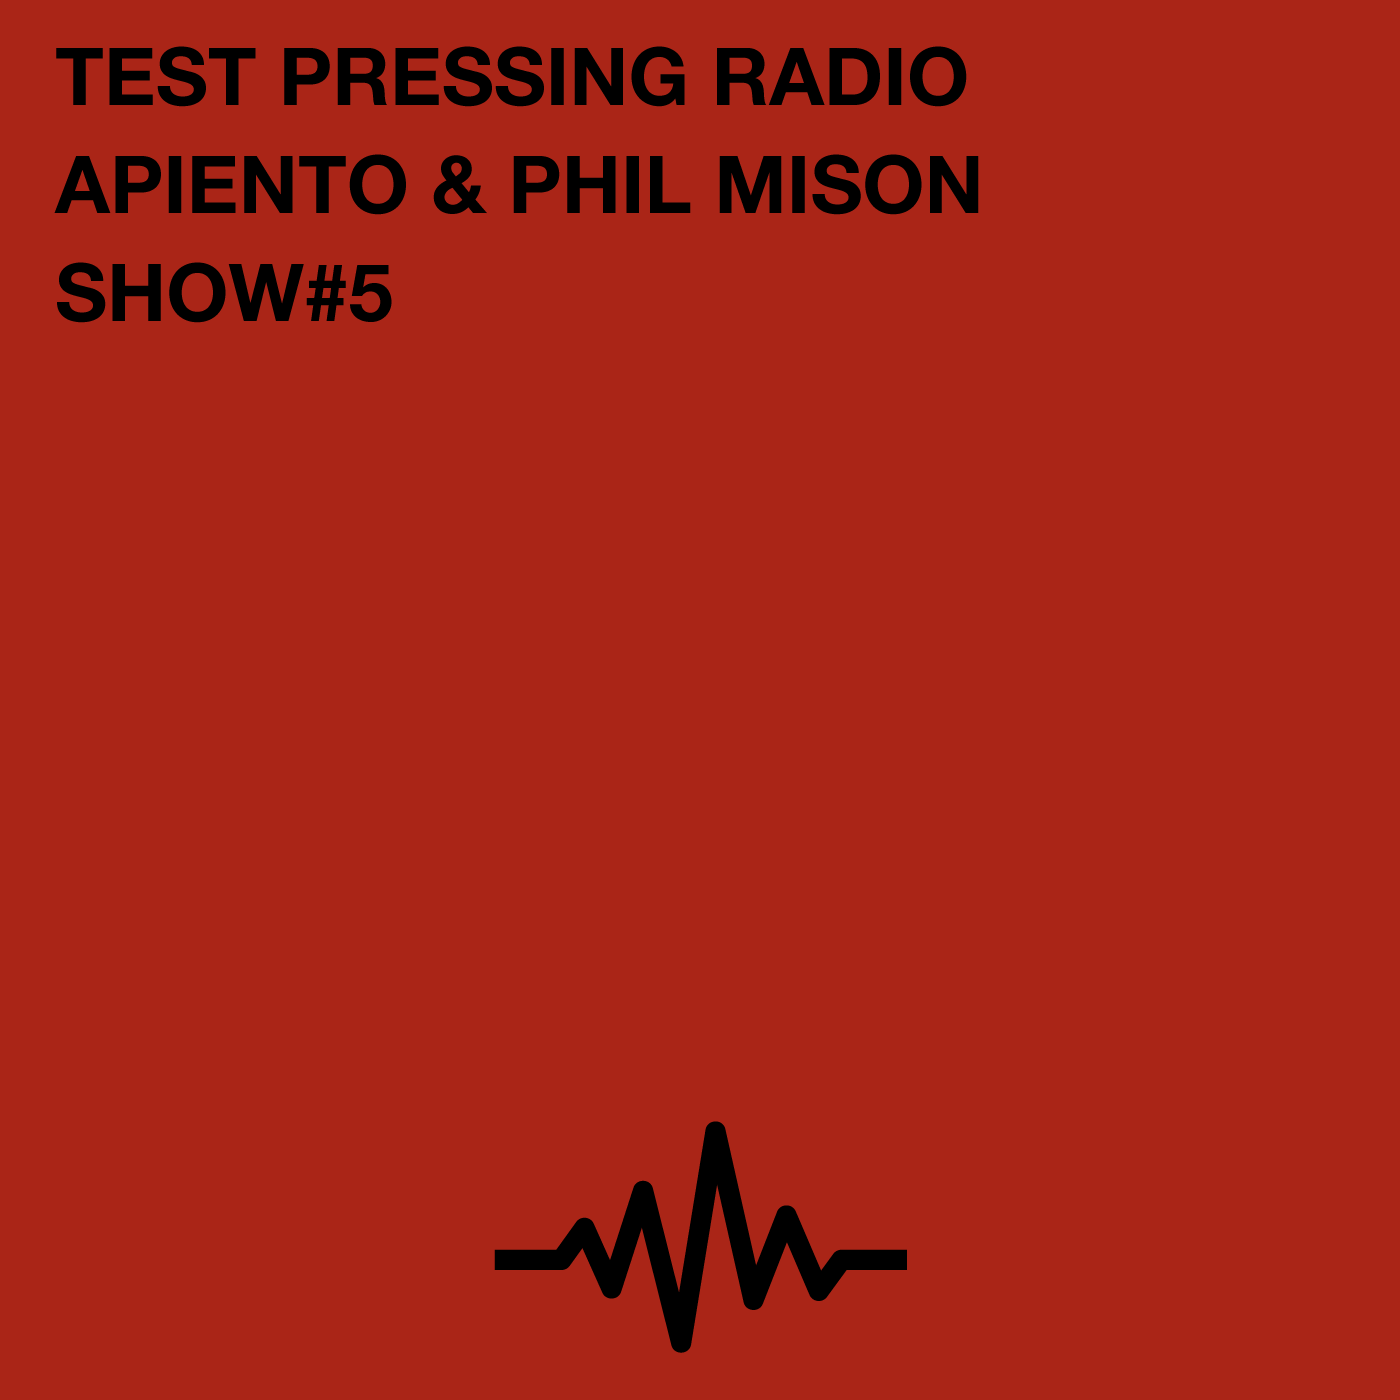 Test Pressing Podcast, Phil Mison, Apiento, Radio, Chat, Red Wine, Music